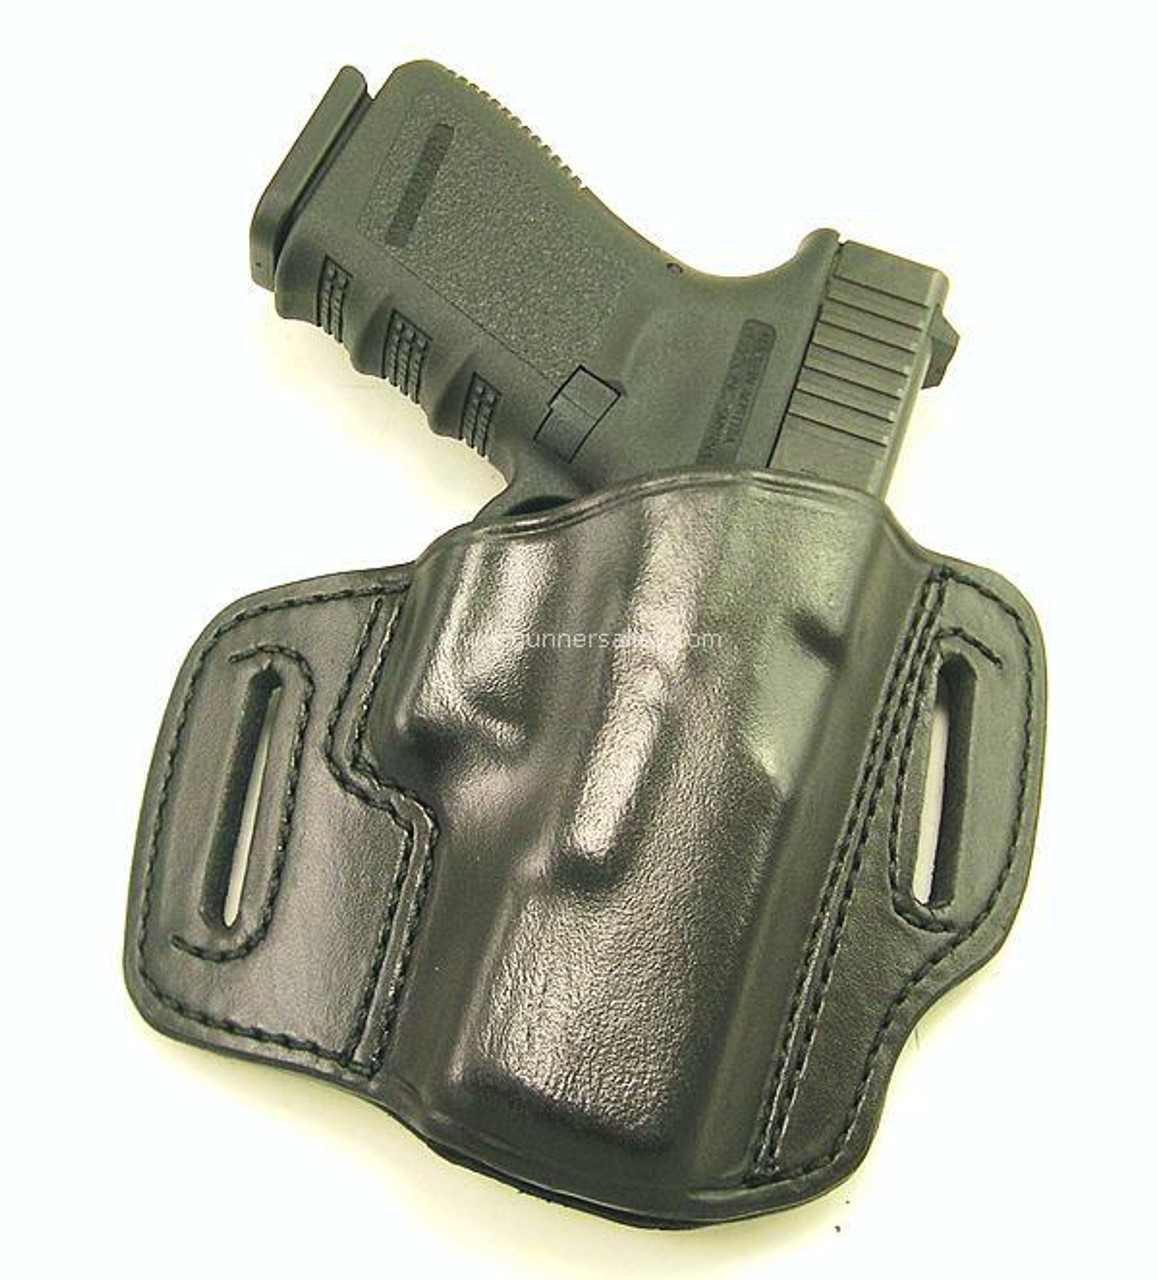 Shown with a Glock G19 - Right Hand